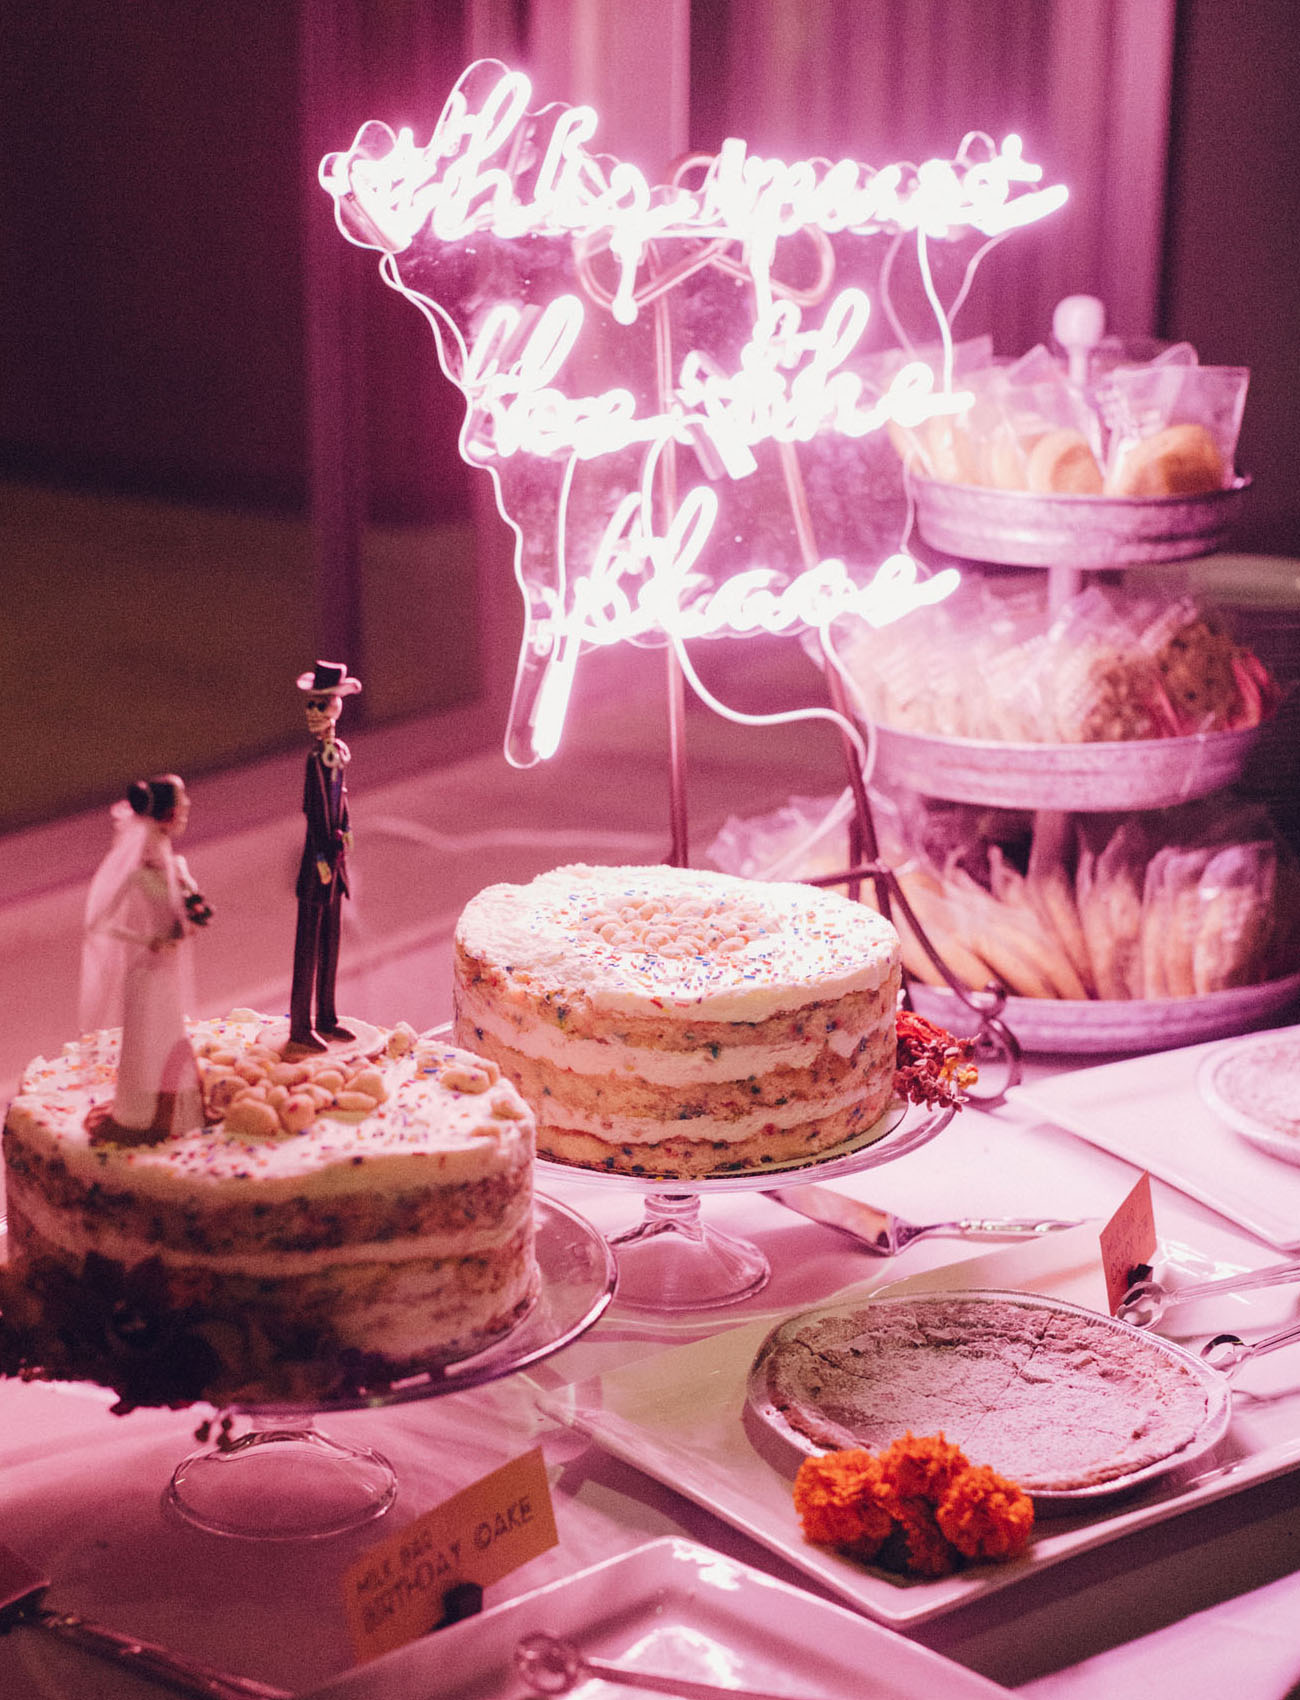 What a gorgeous dessert table done with a neon sign